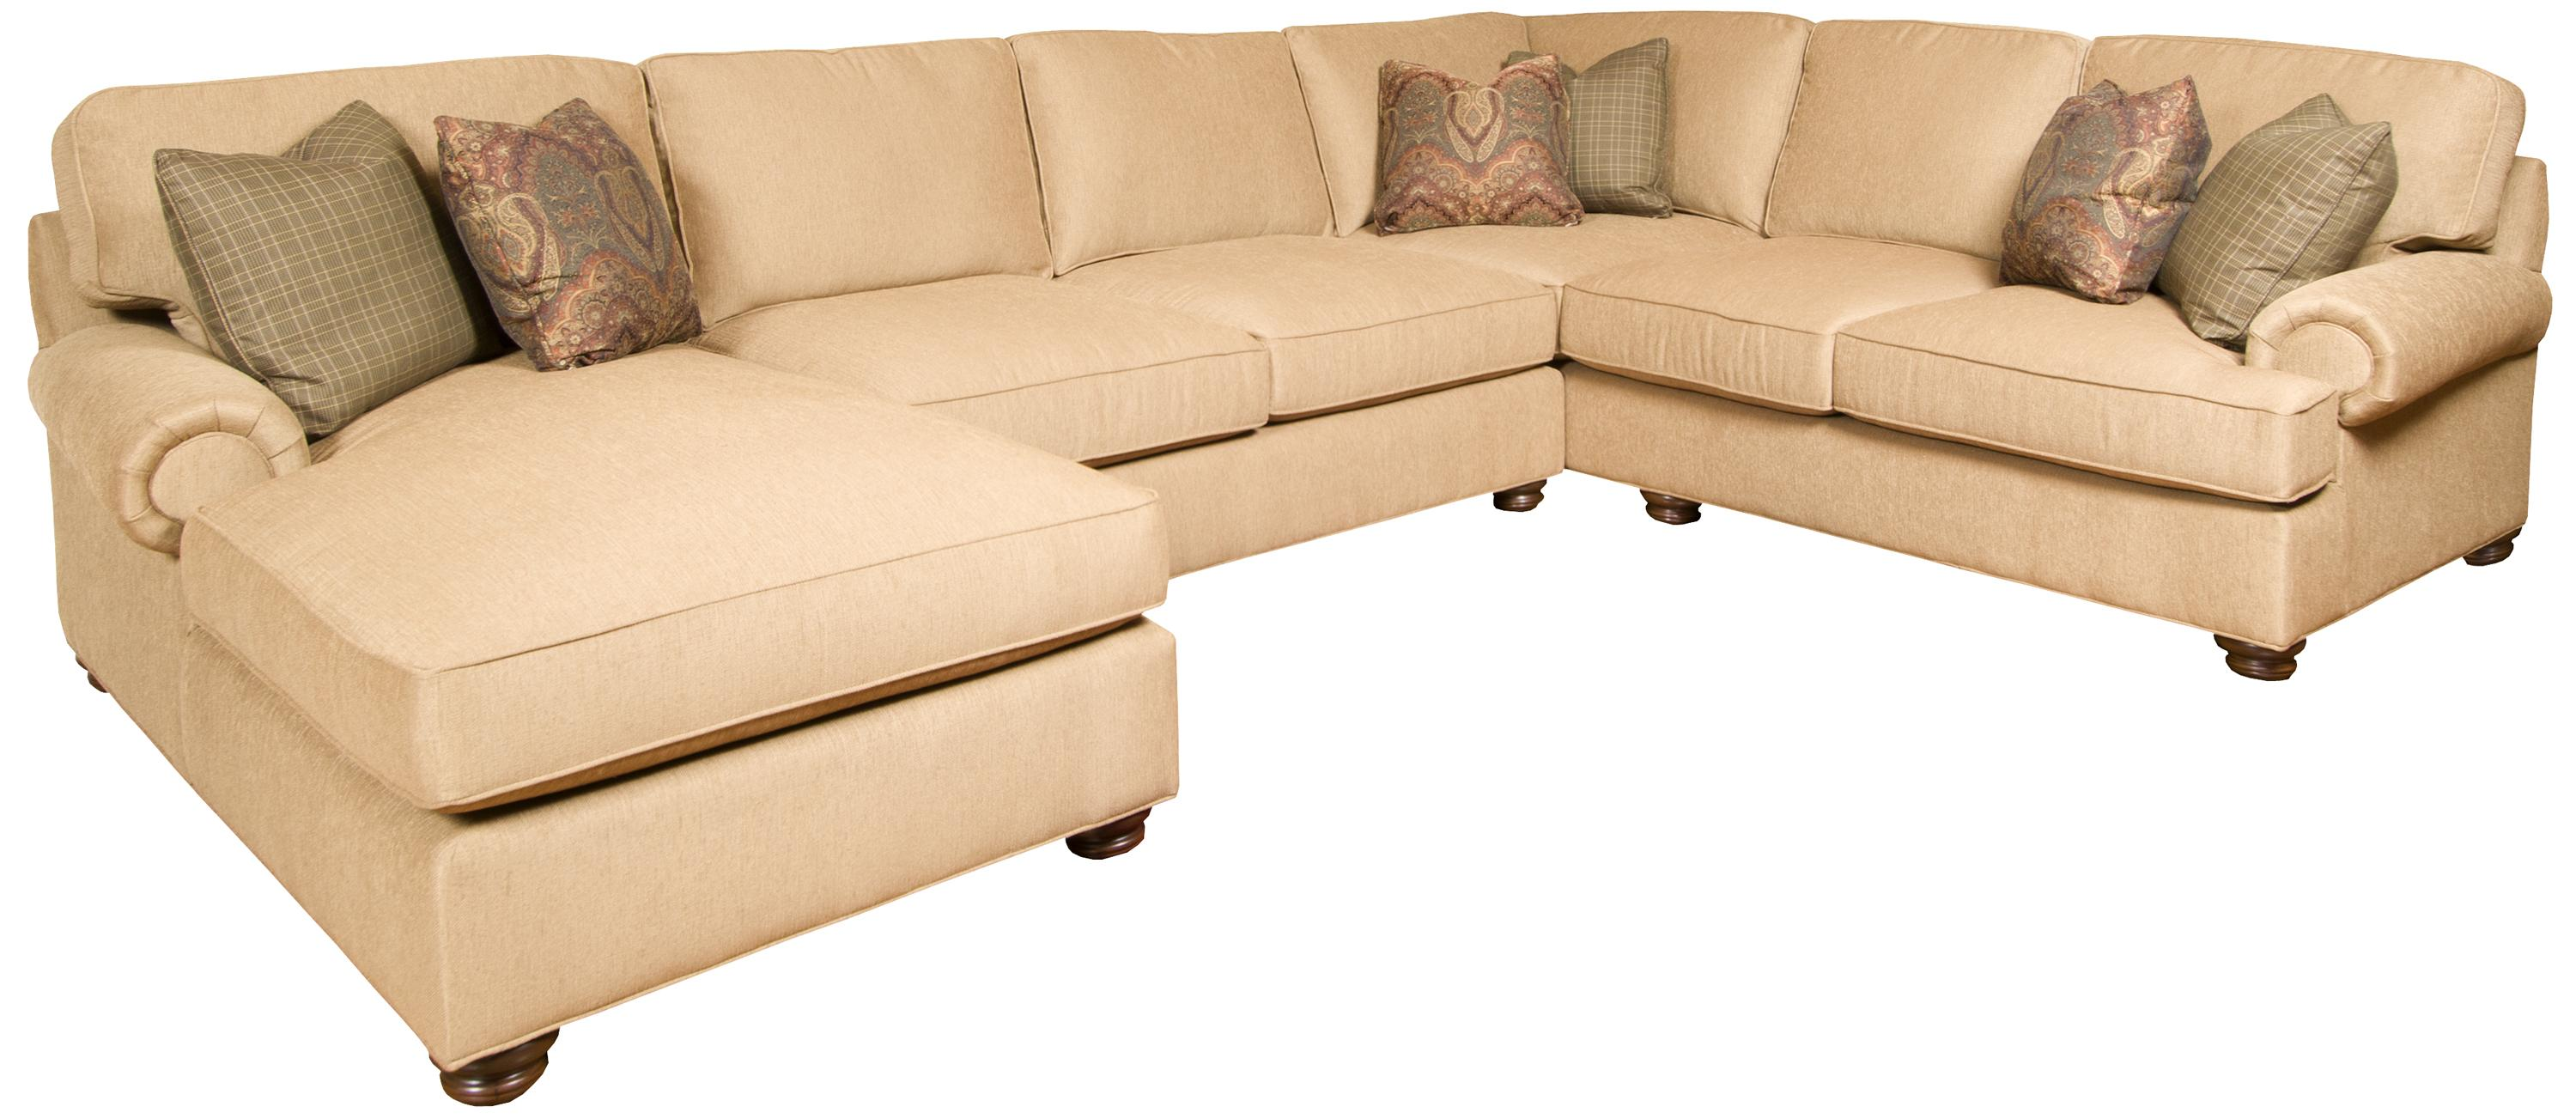 Henson 3- Piece Customizable Sectional by King Hickory at Goods Furniture